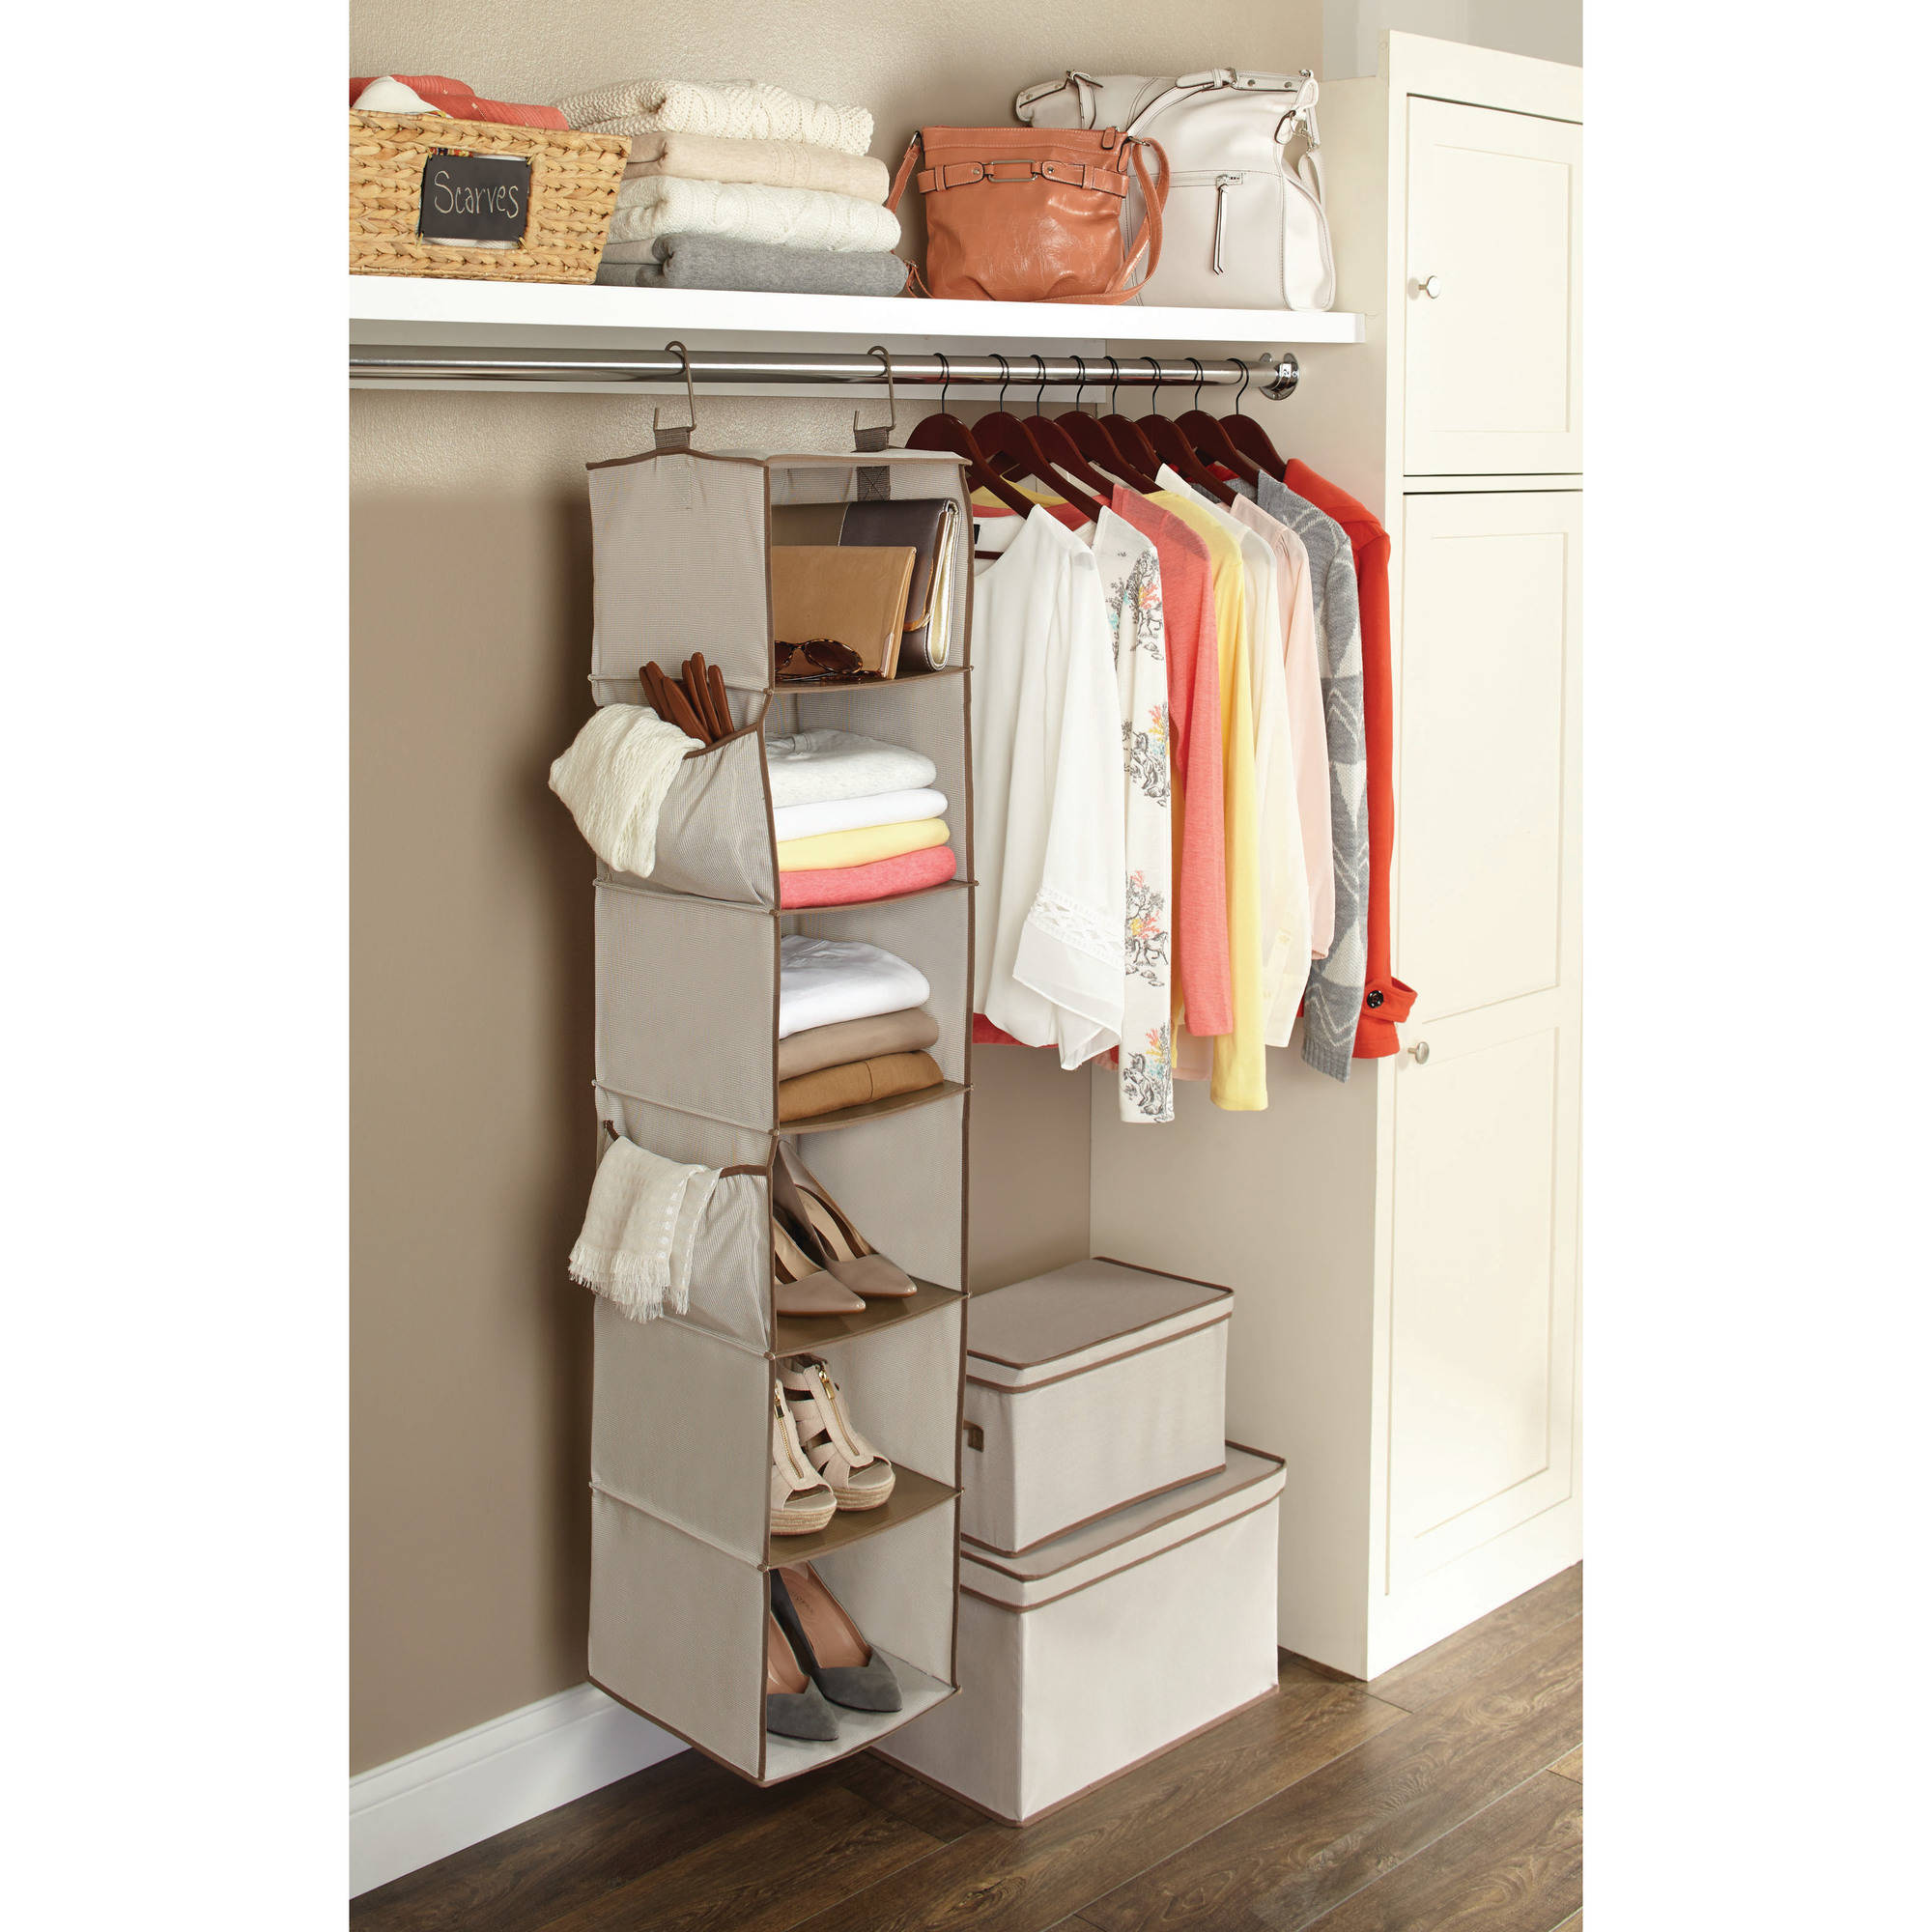 Superbe Better Homes And Gardens 6 Shelf Hanging Closet Organizer